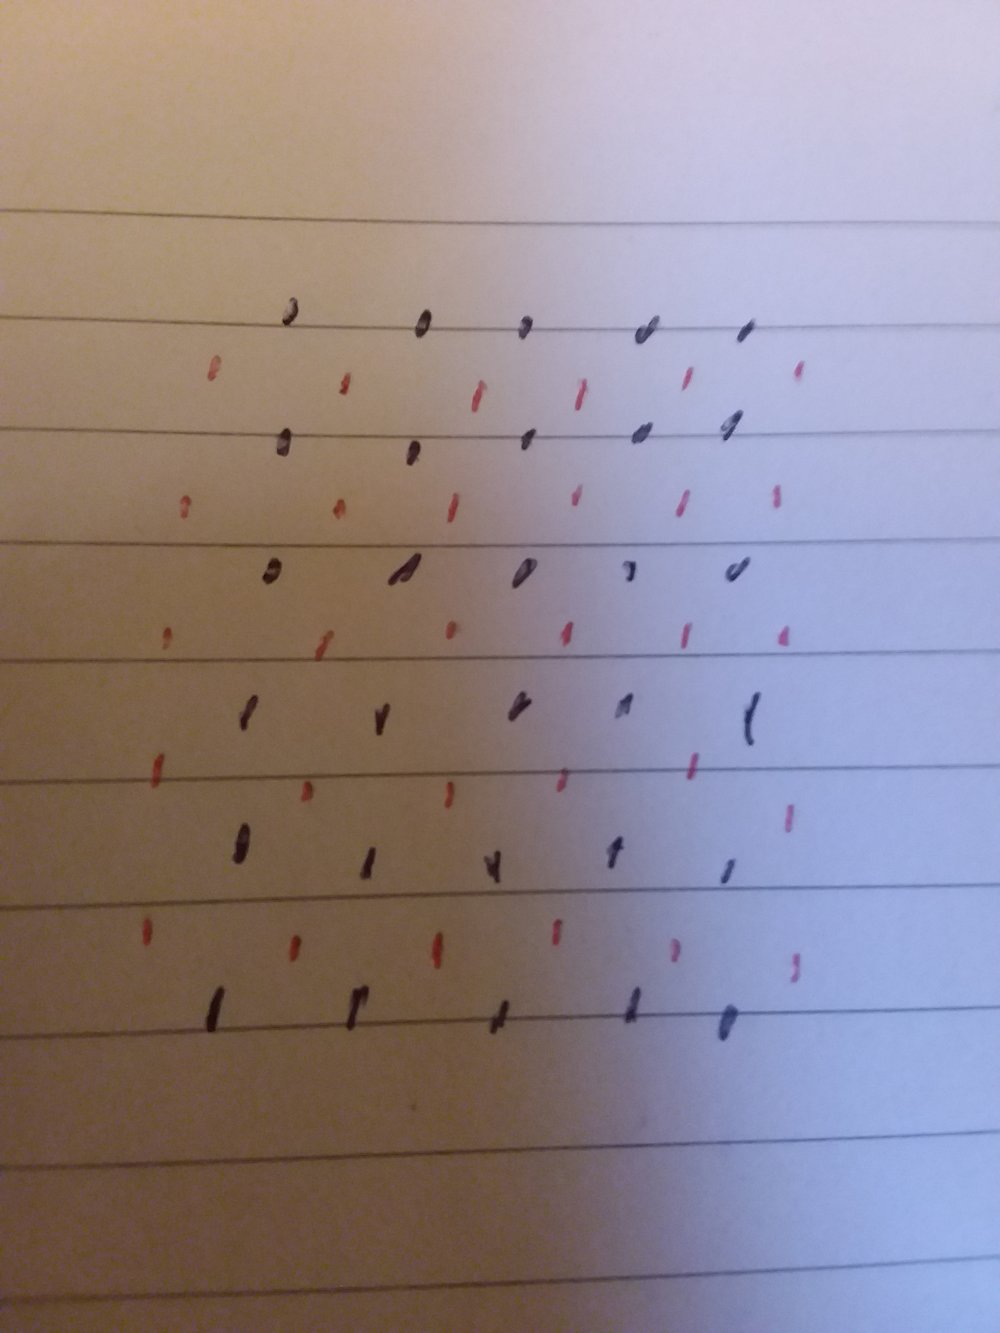 Filled dots and empty circles are an easy substitute when you only have one colour of pen